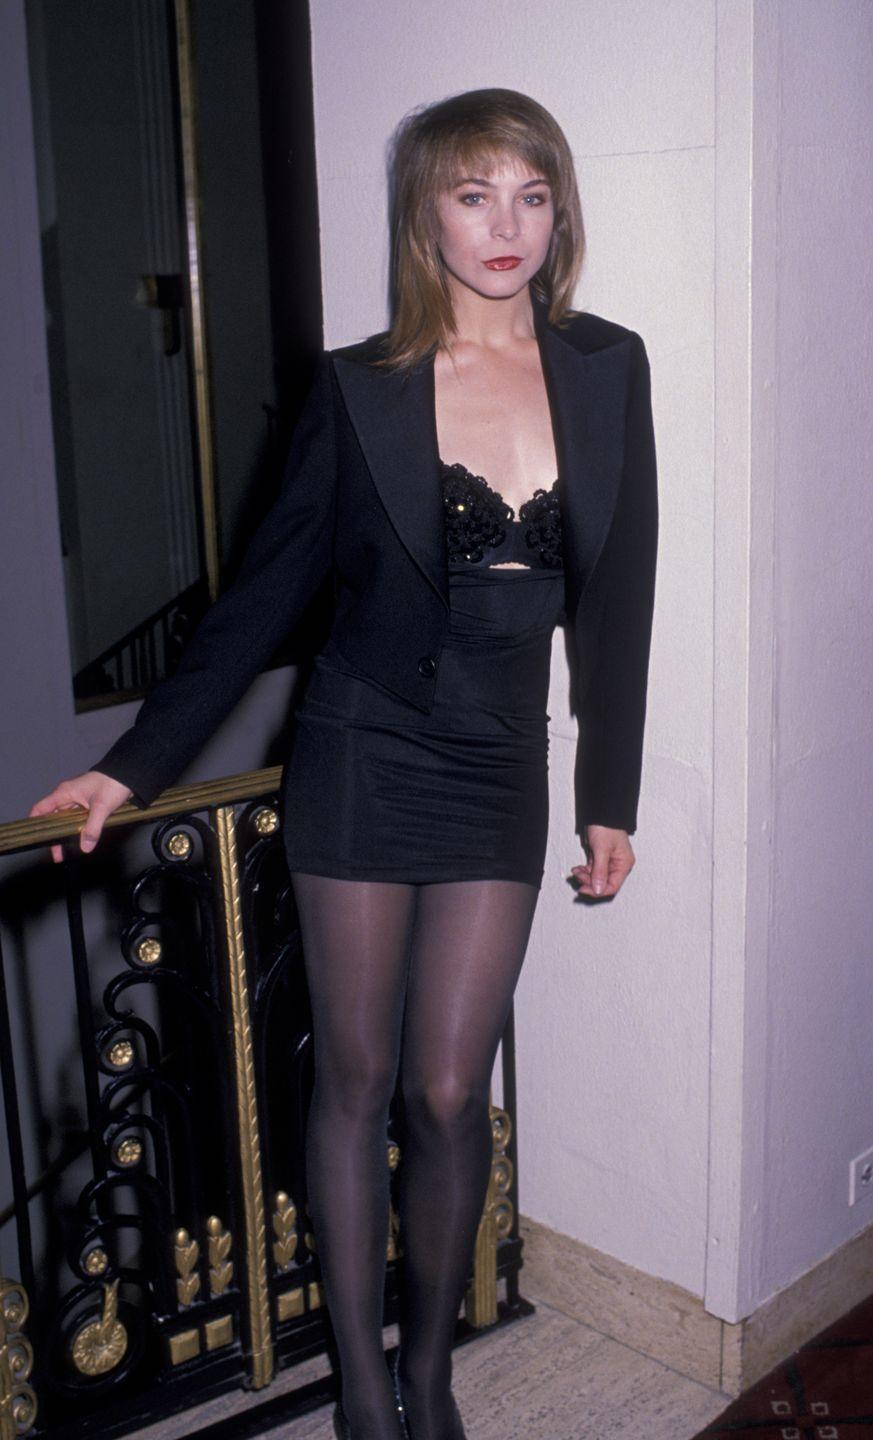 <p>Coleman stunned in a black suit-top with sequined bra and miniskirt.</p>